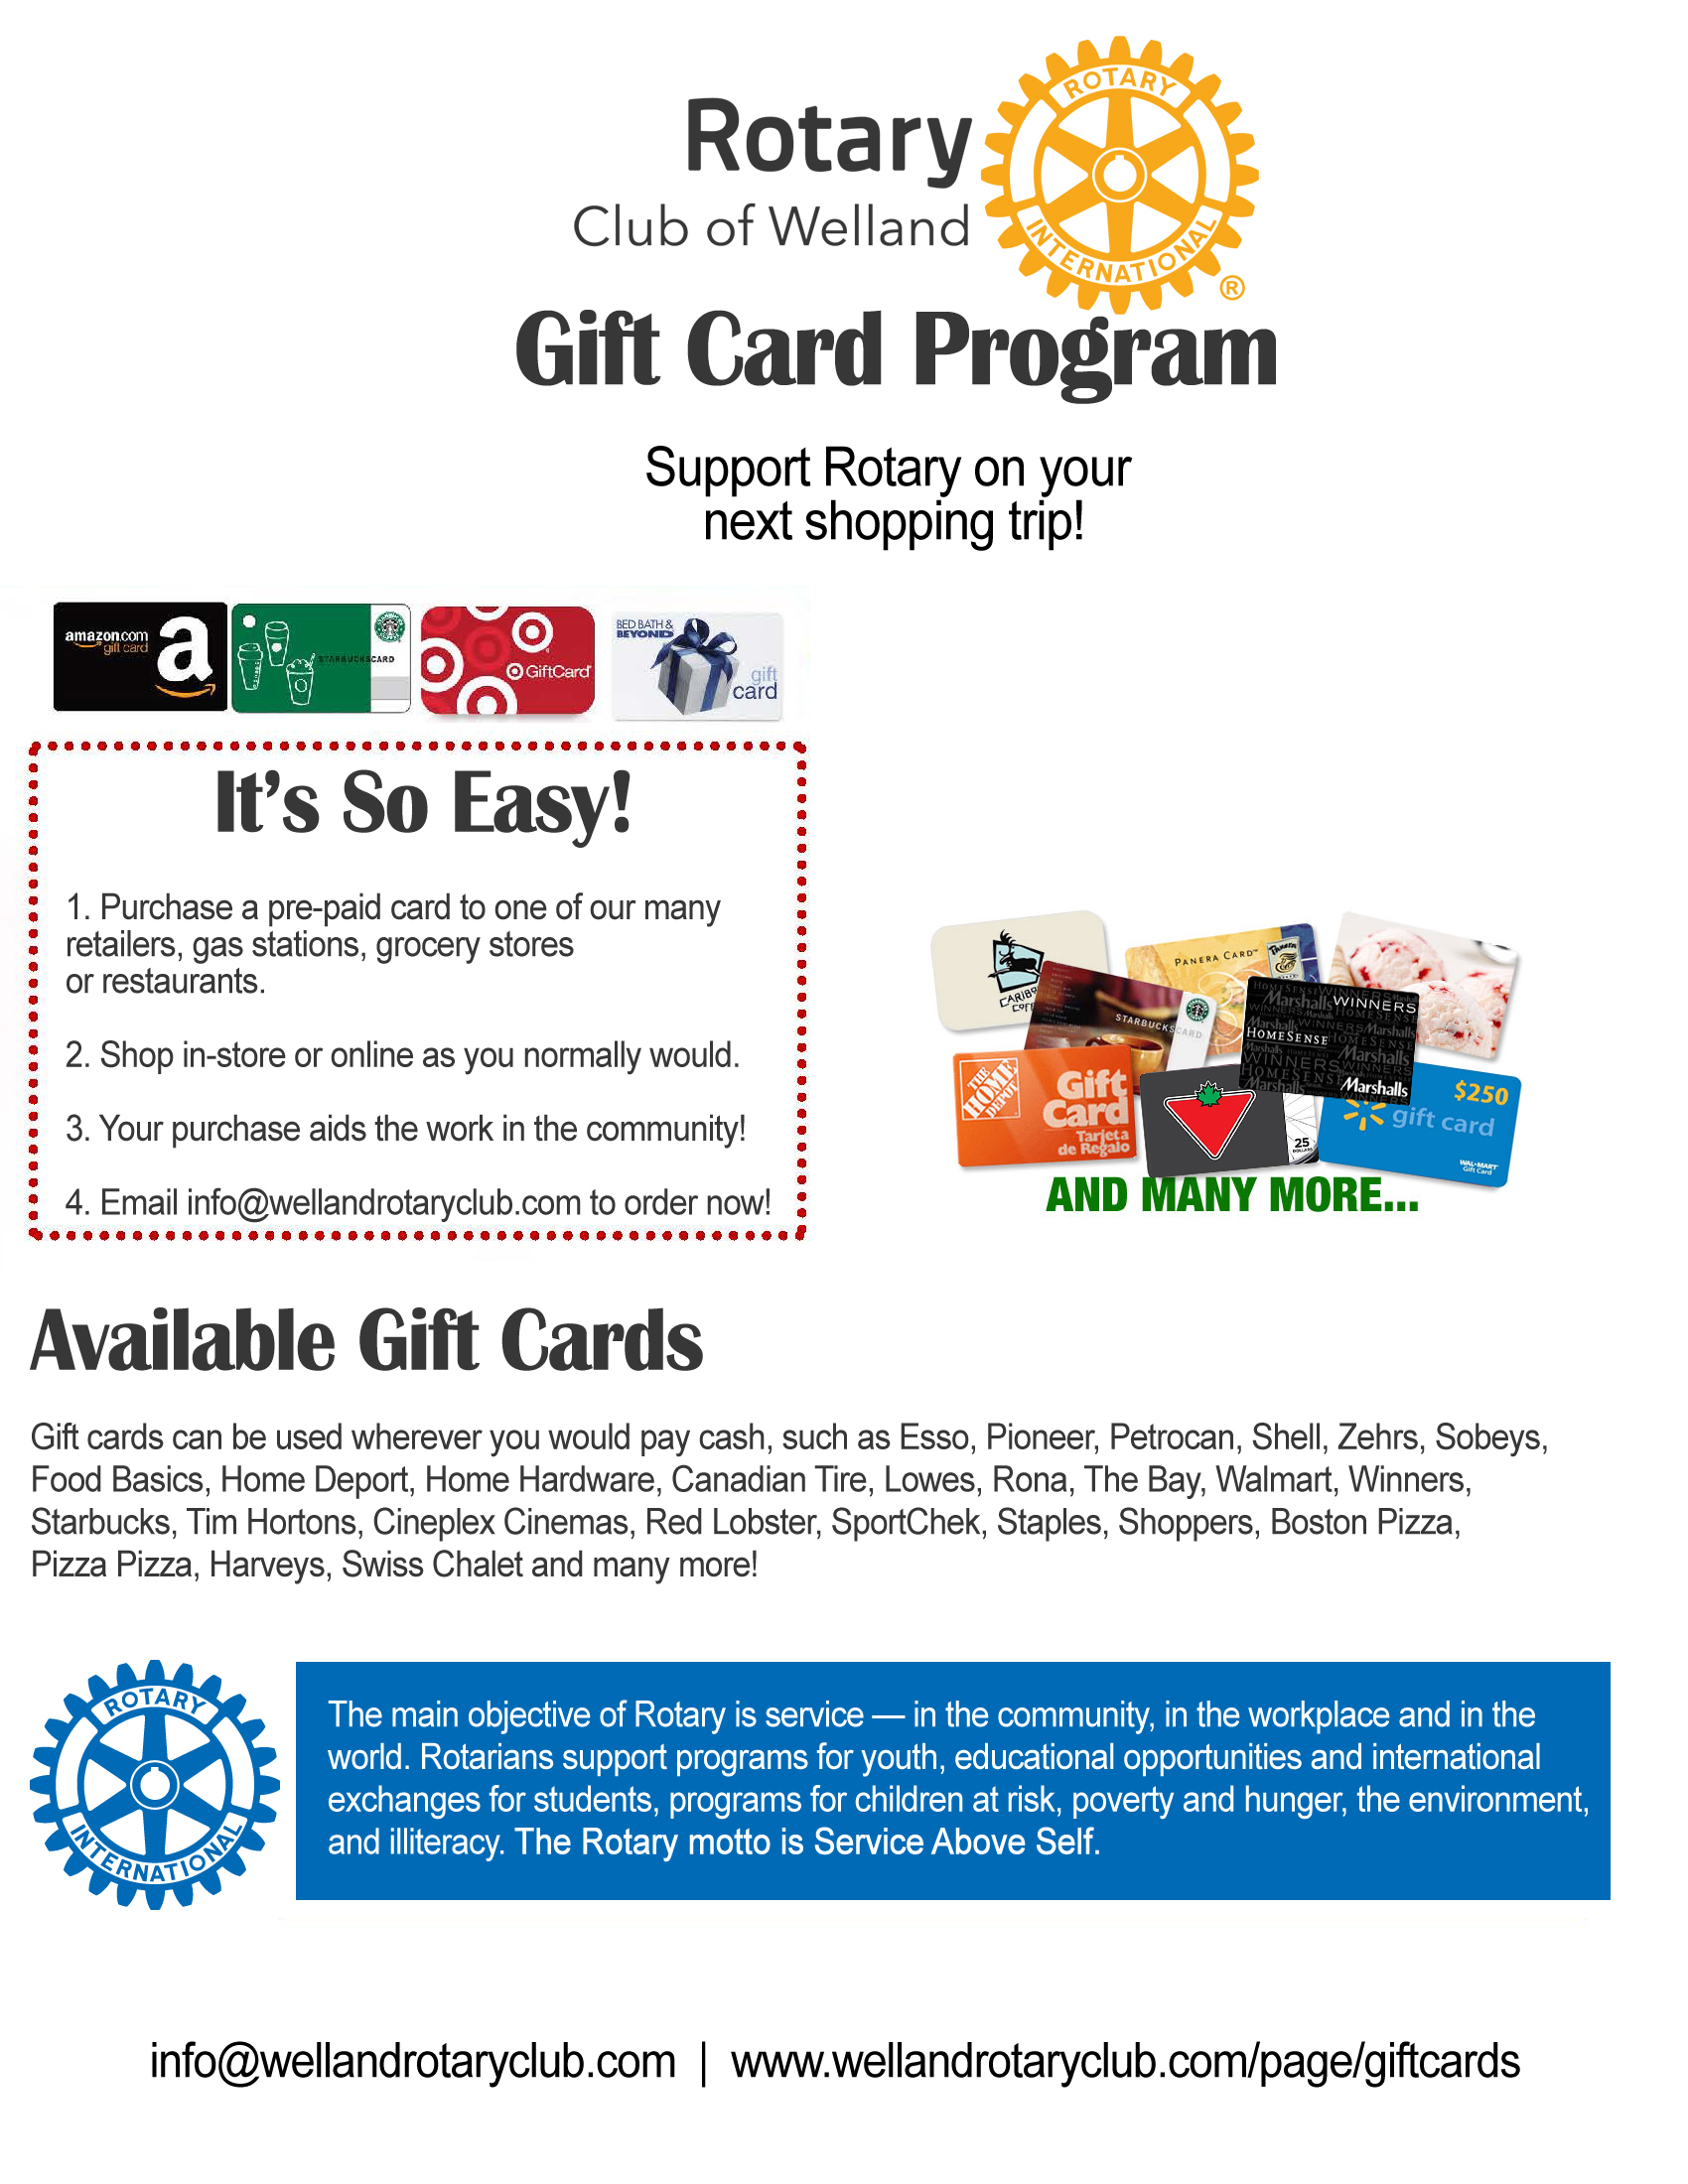 Gift Cards | Rotary Club of Welland